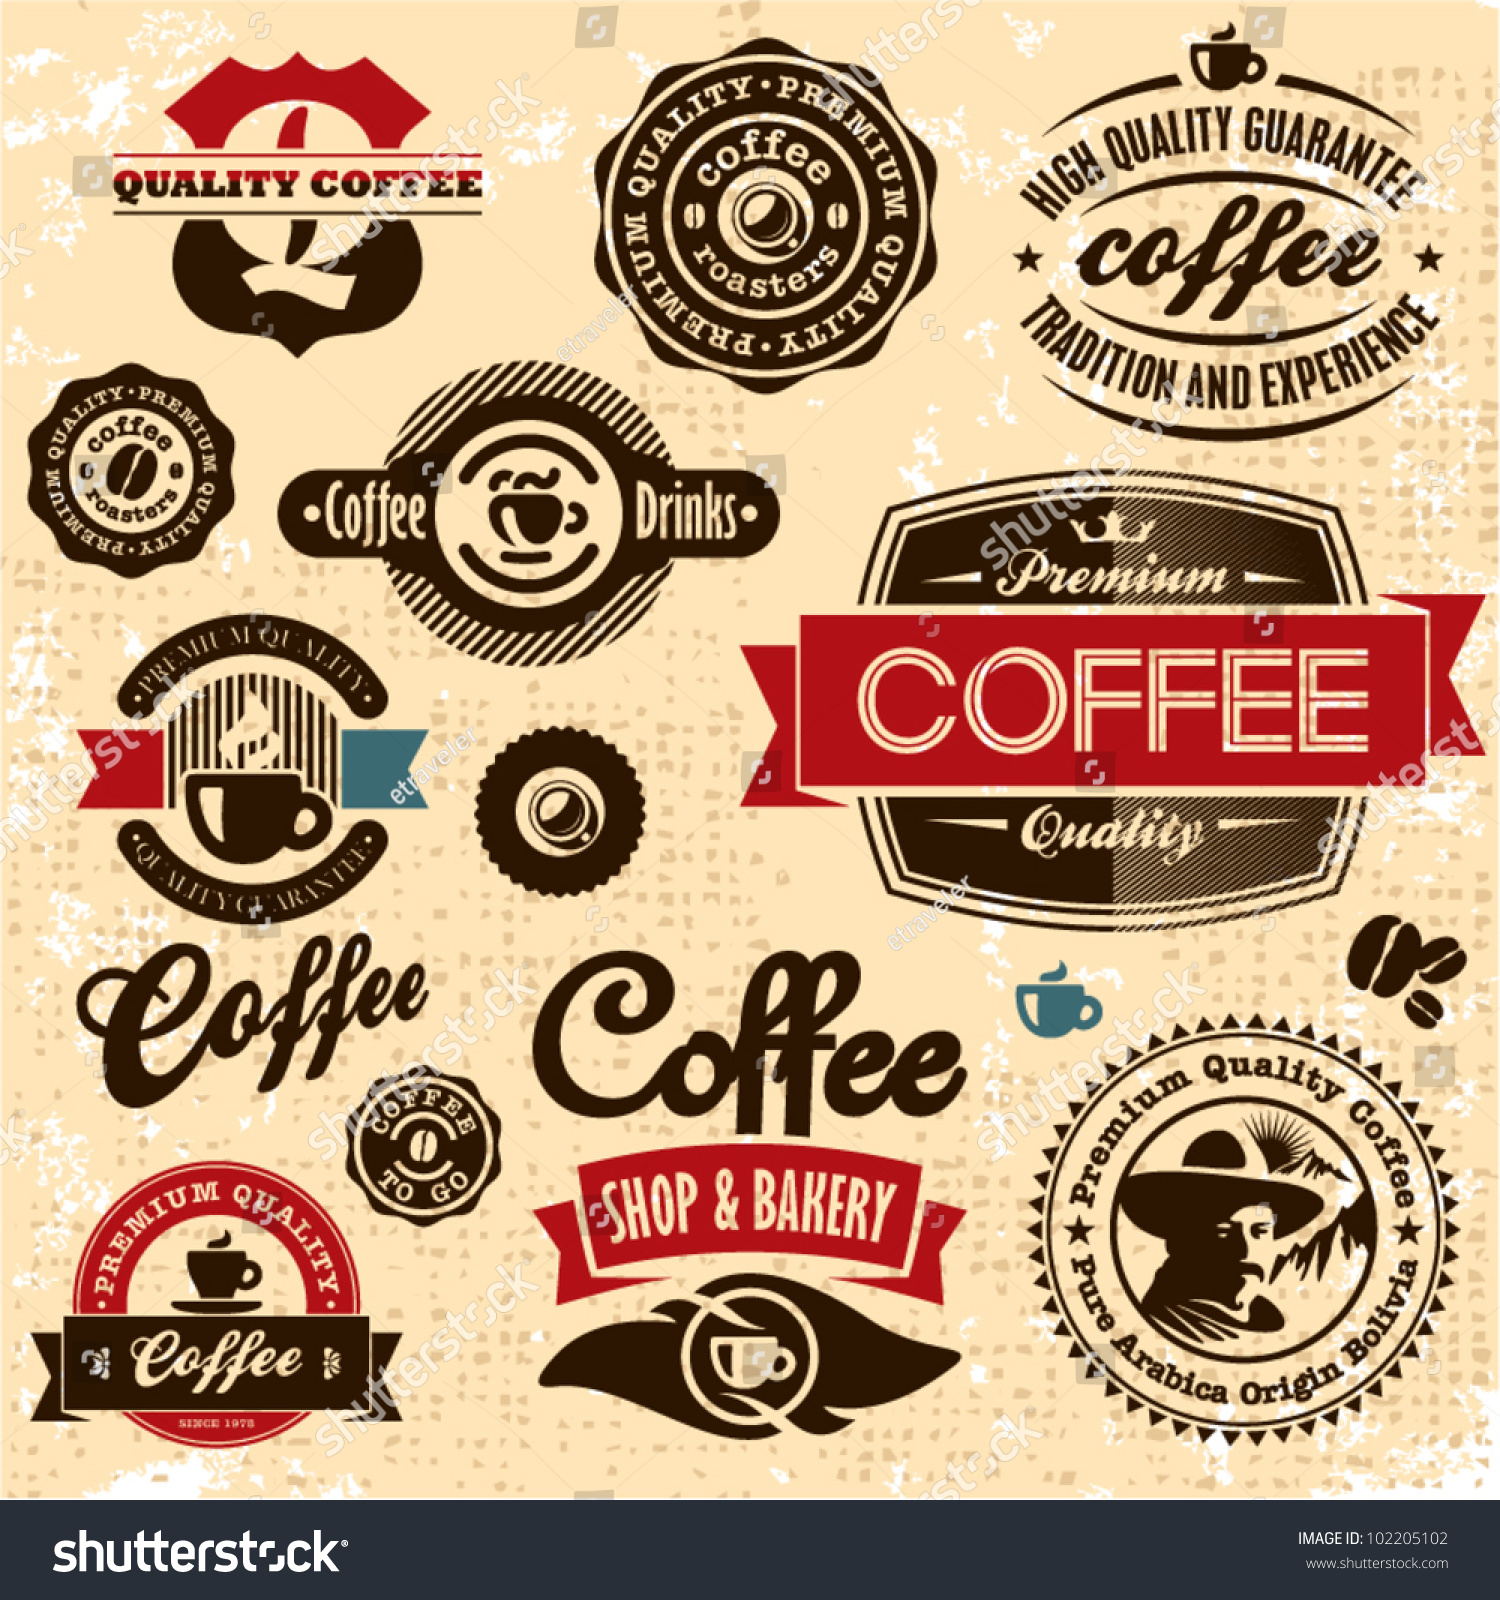 Retro style coffee vintage collection.